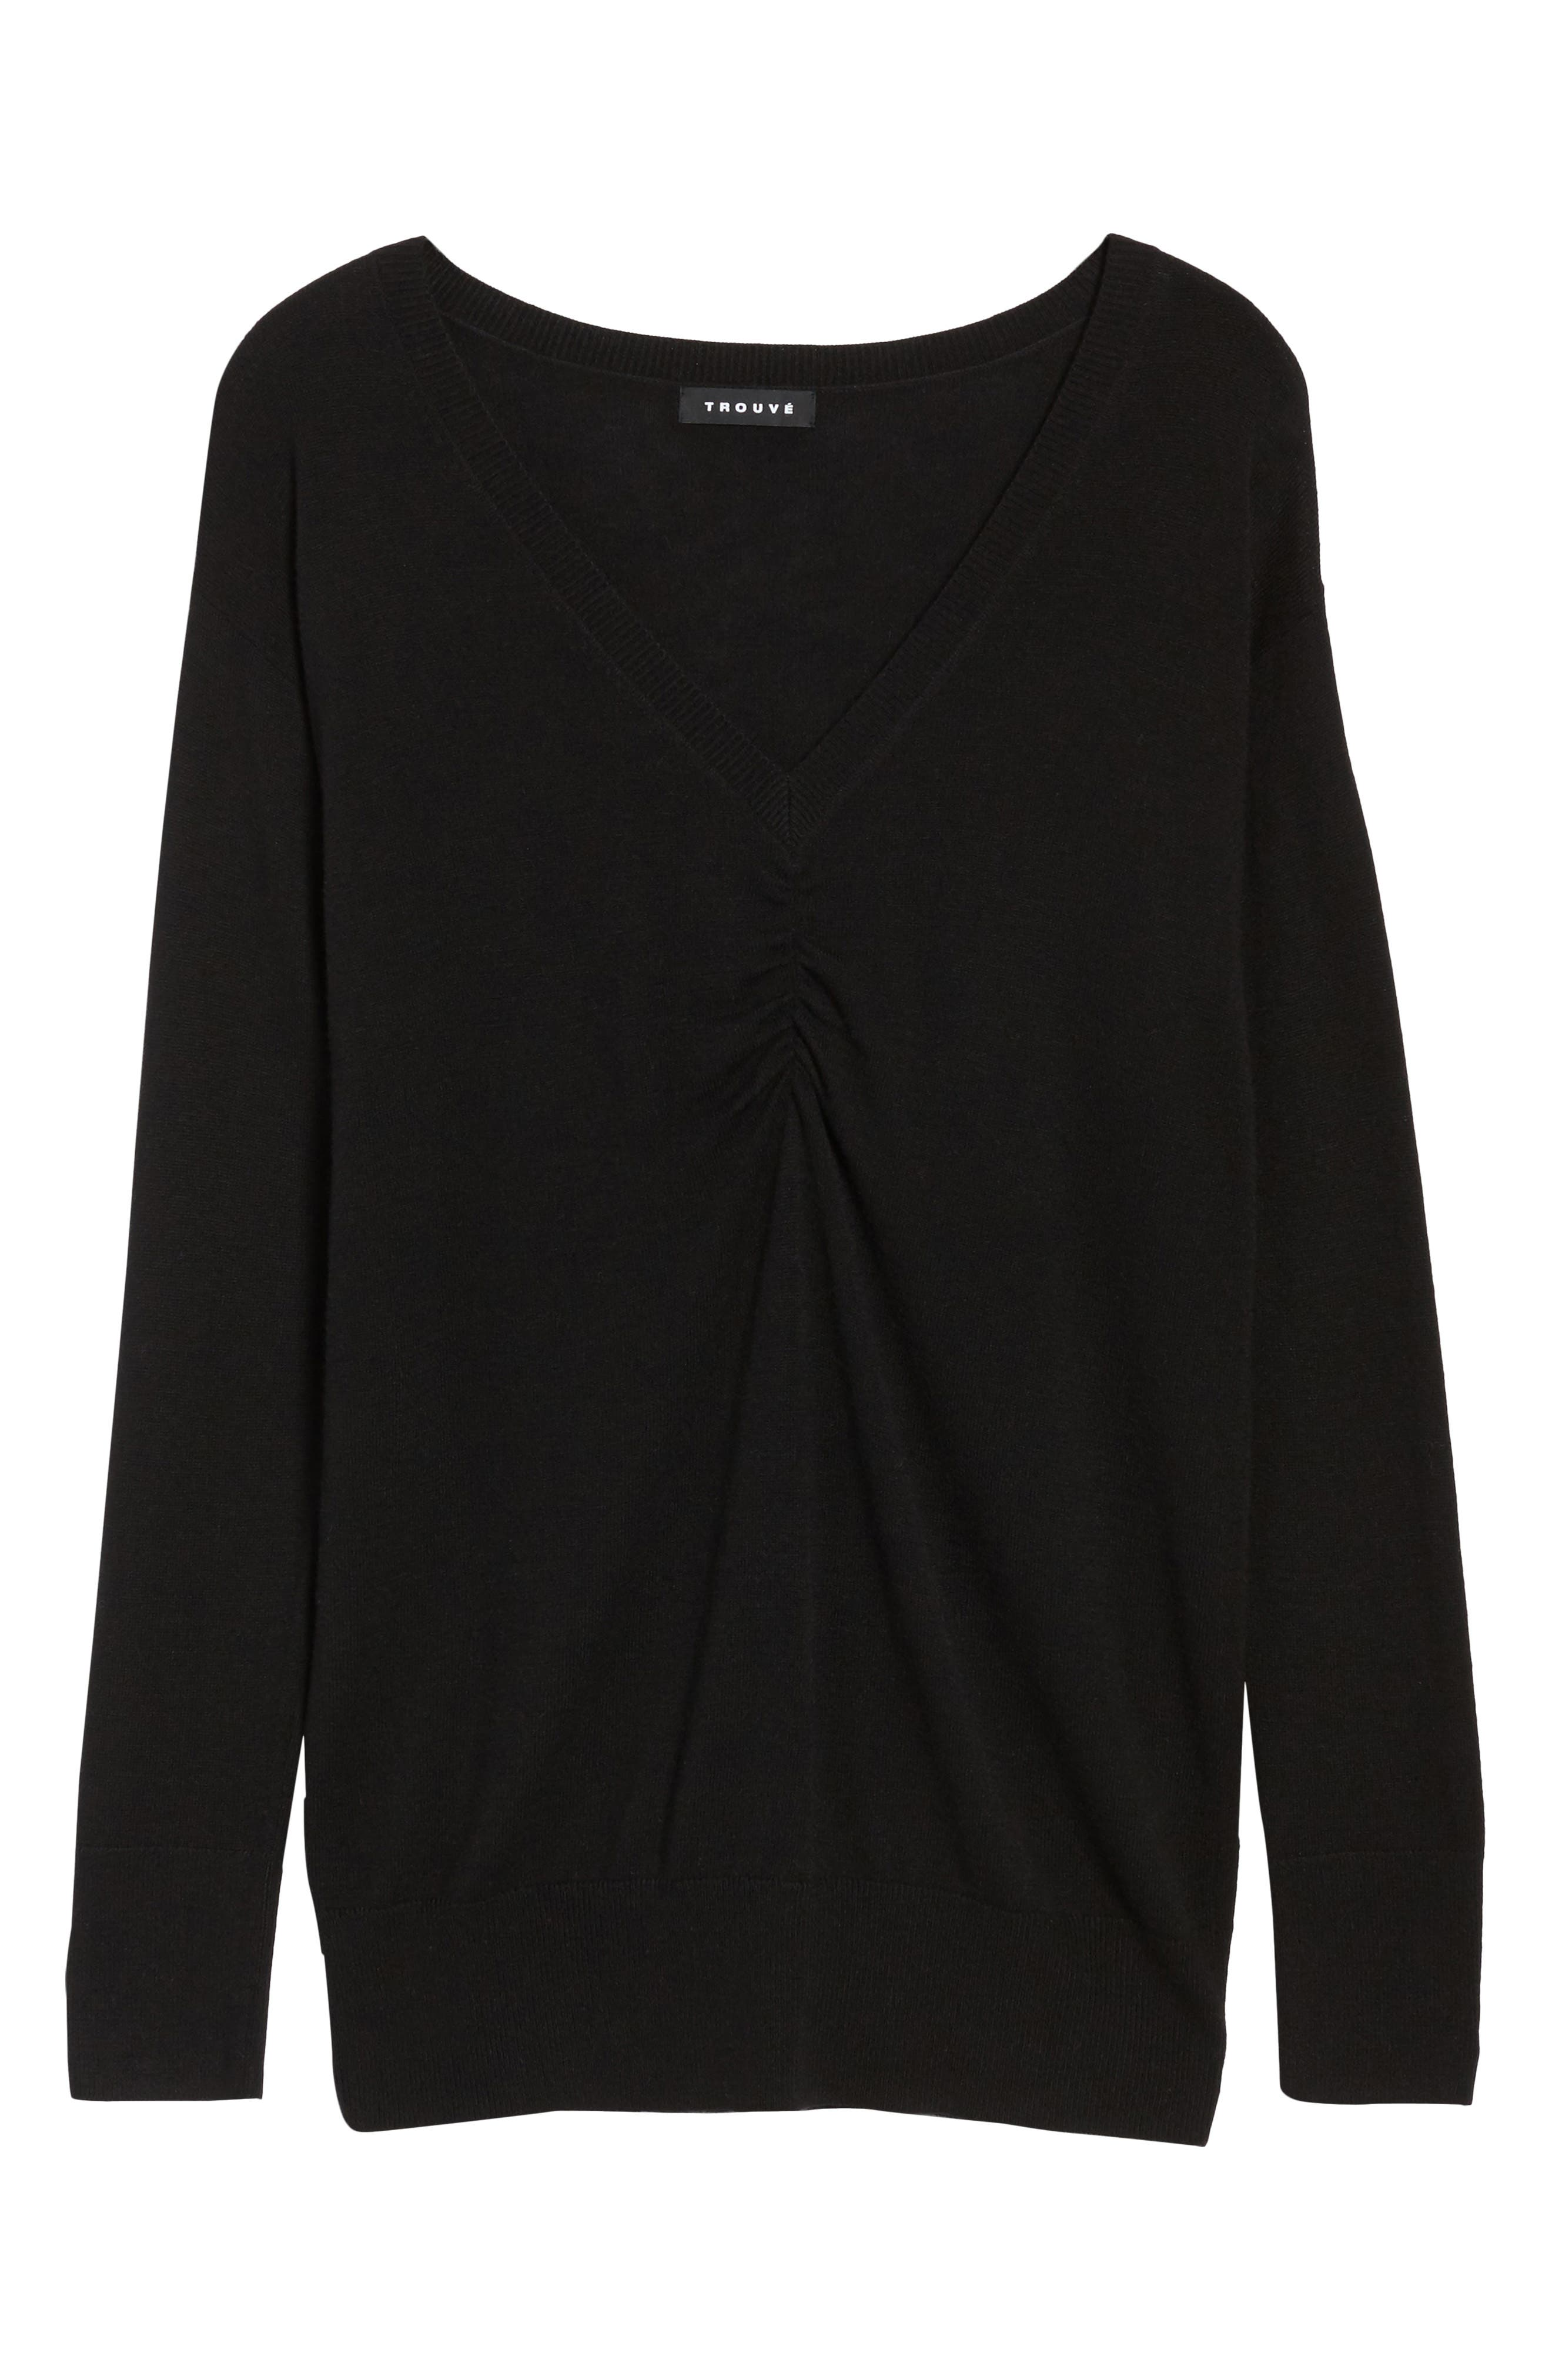 Ruched Sweater,                             Alternate thumbnail 6, color,                             Black